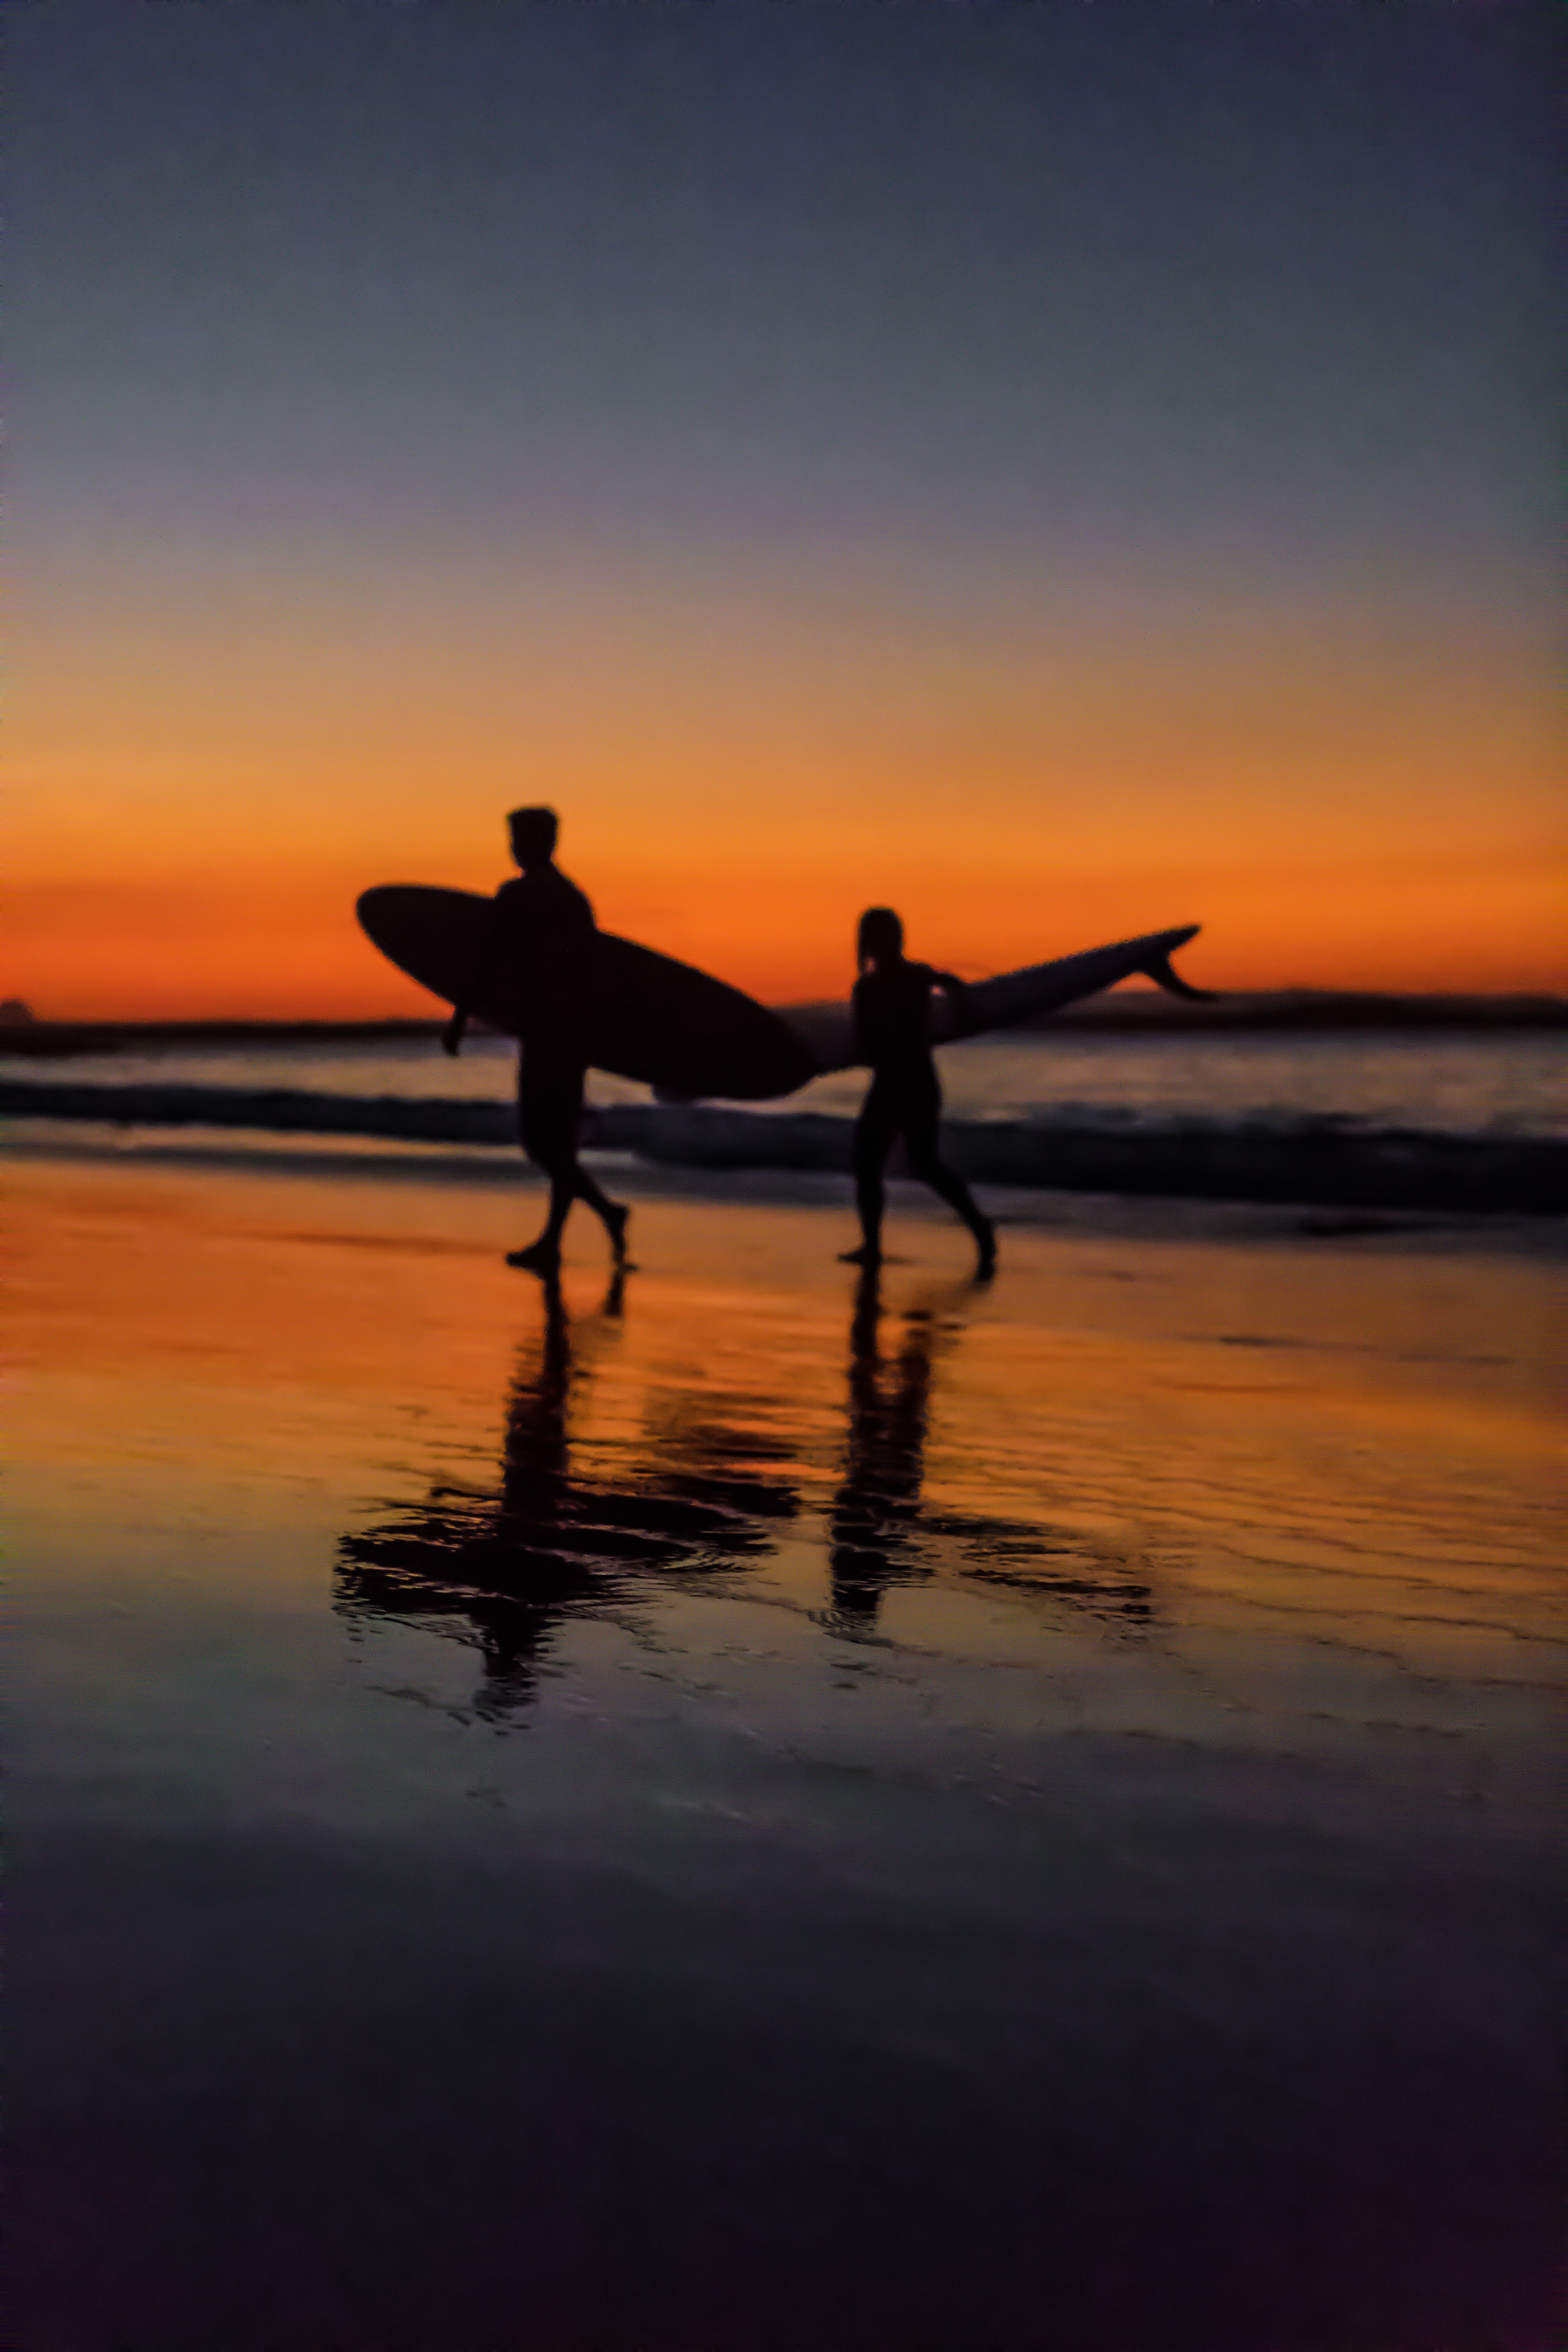 Two Surfers at the Seashore during Sunset